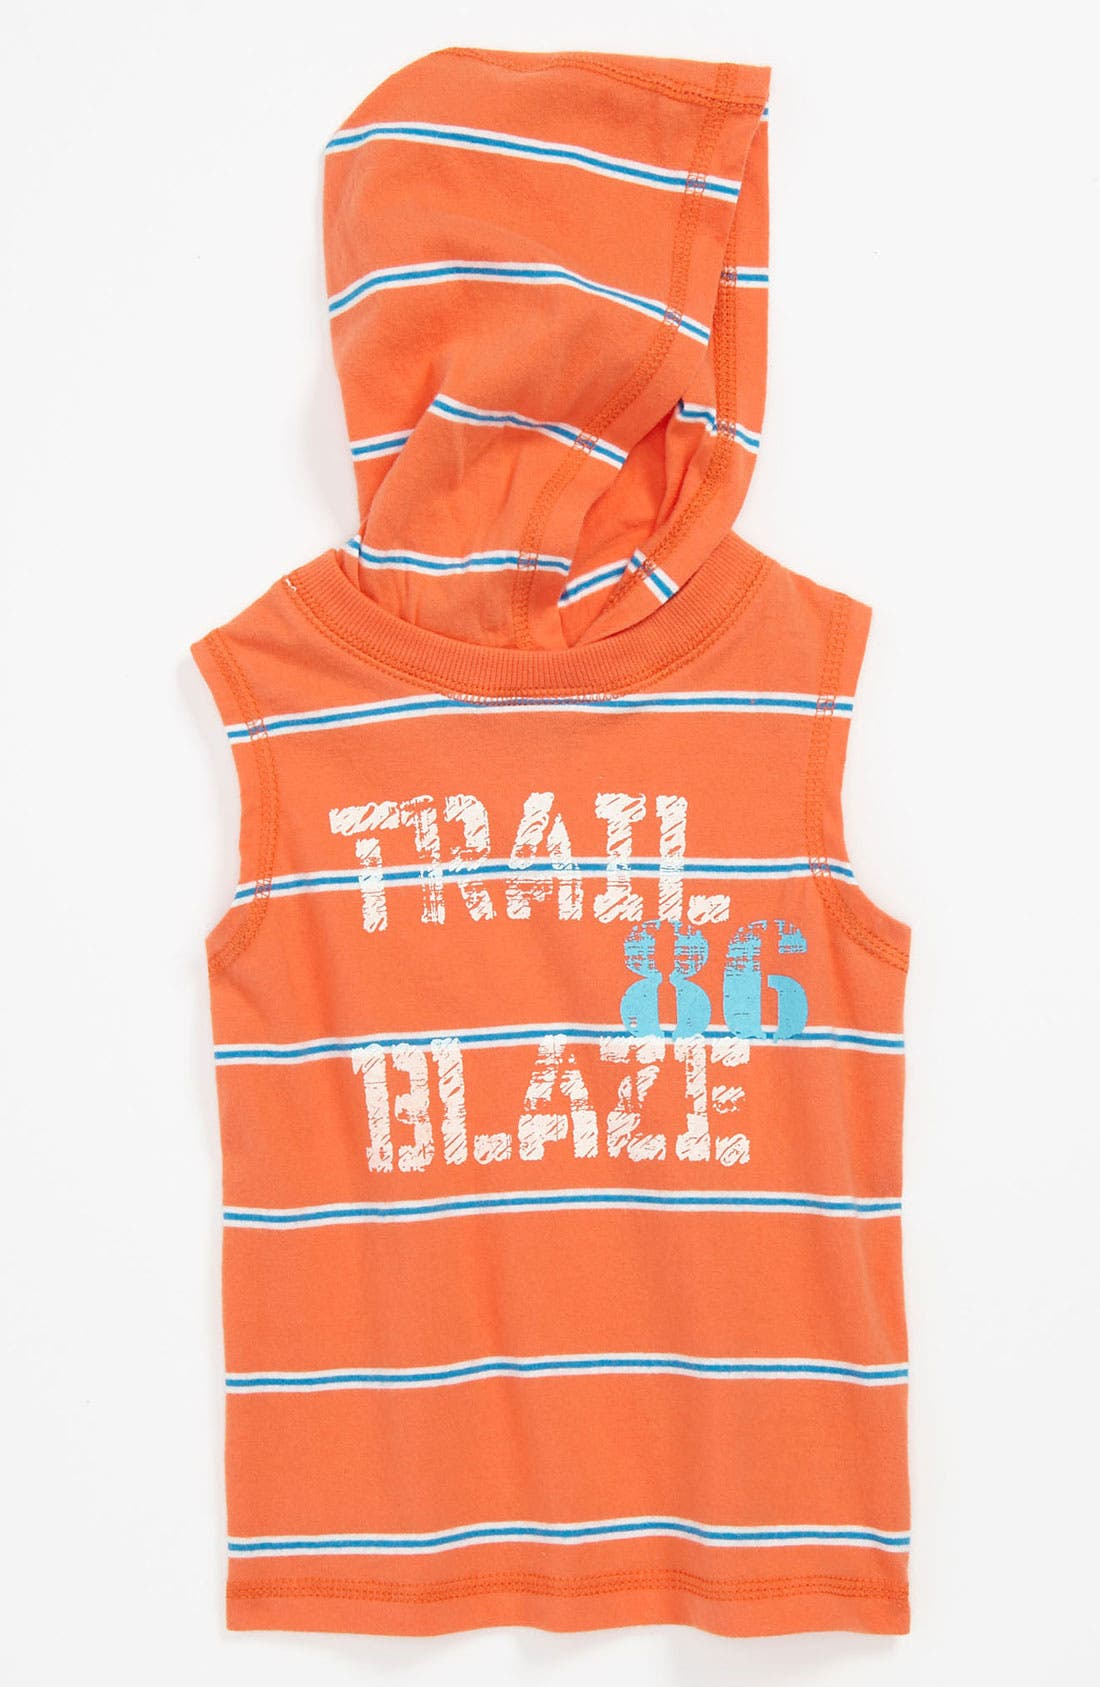 Main Image - Pumpkin Patch Hooded Top (Baby)